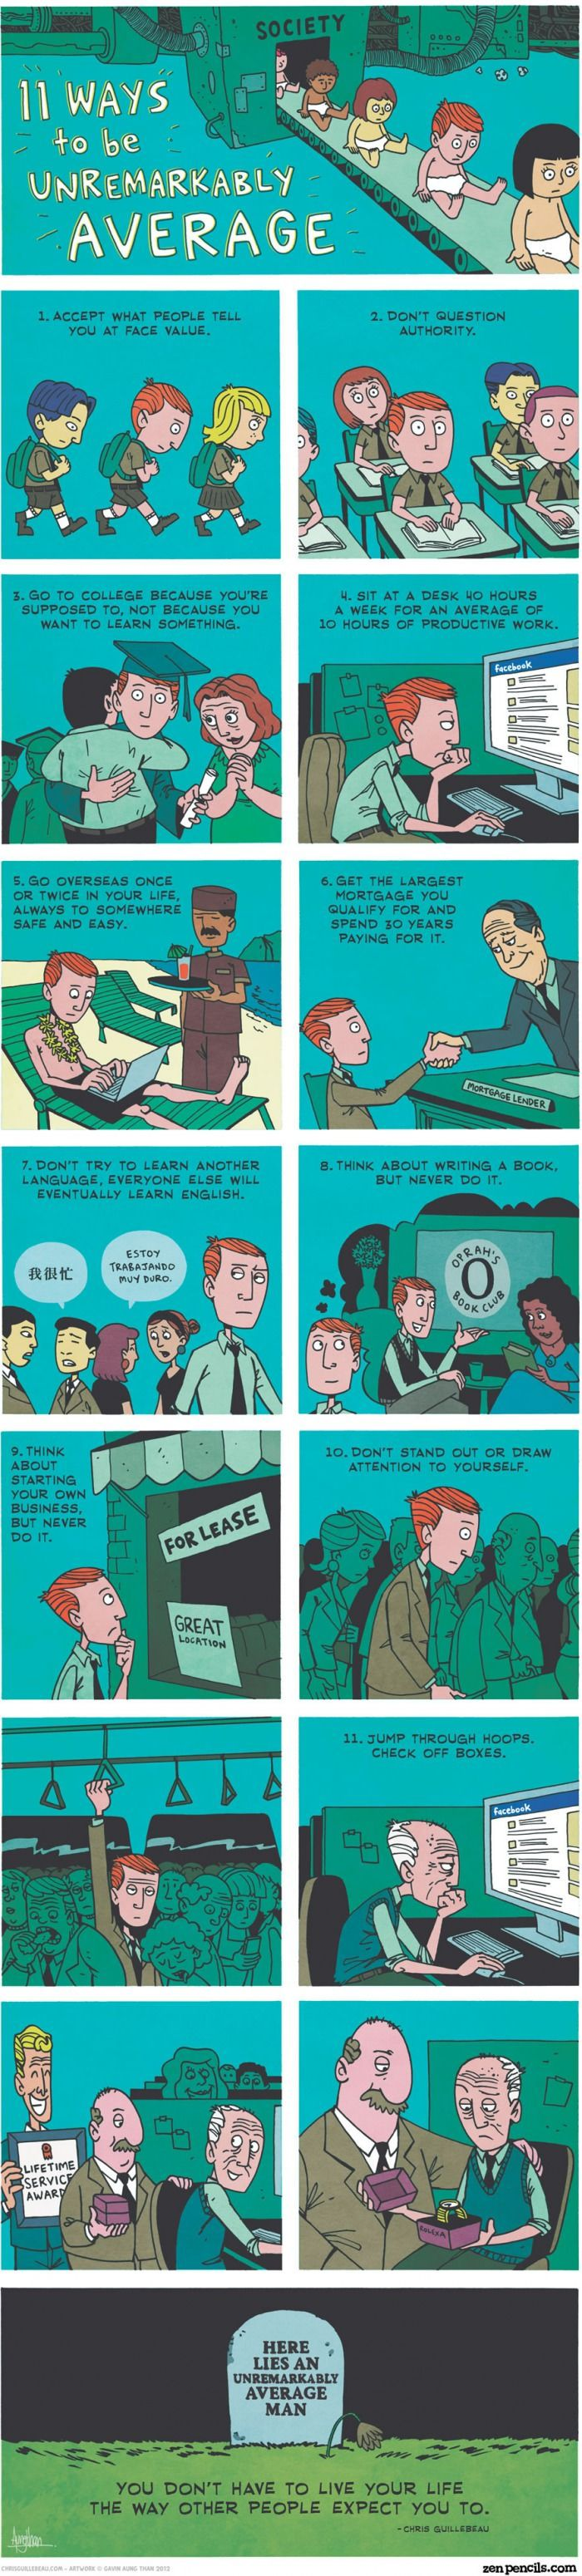 """11 ways to be unremarkably average"" - quote by chris guillebeau, art from zenpencils.com"